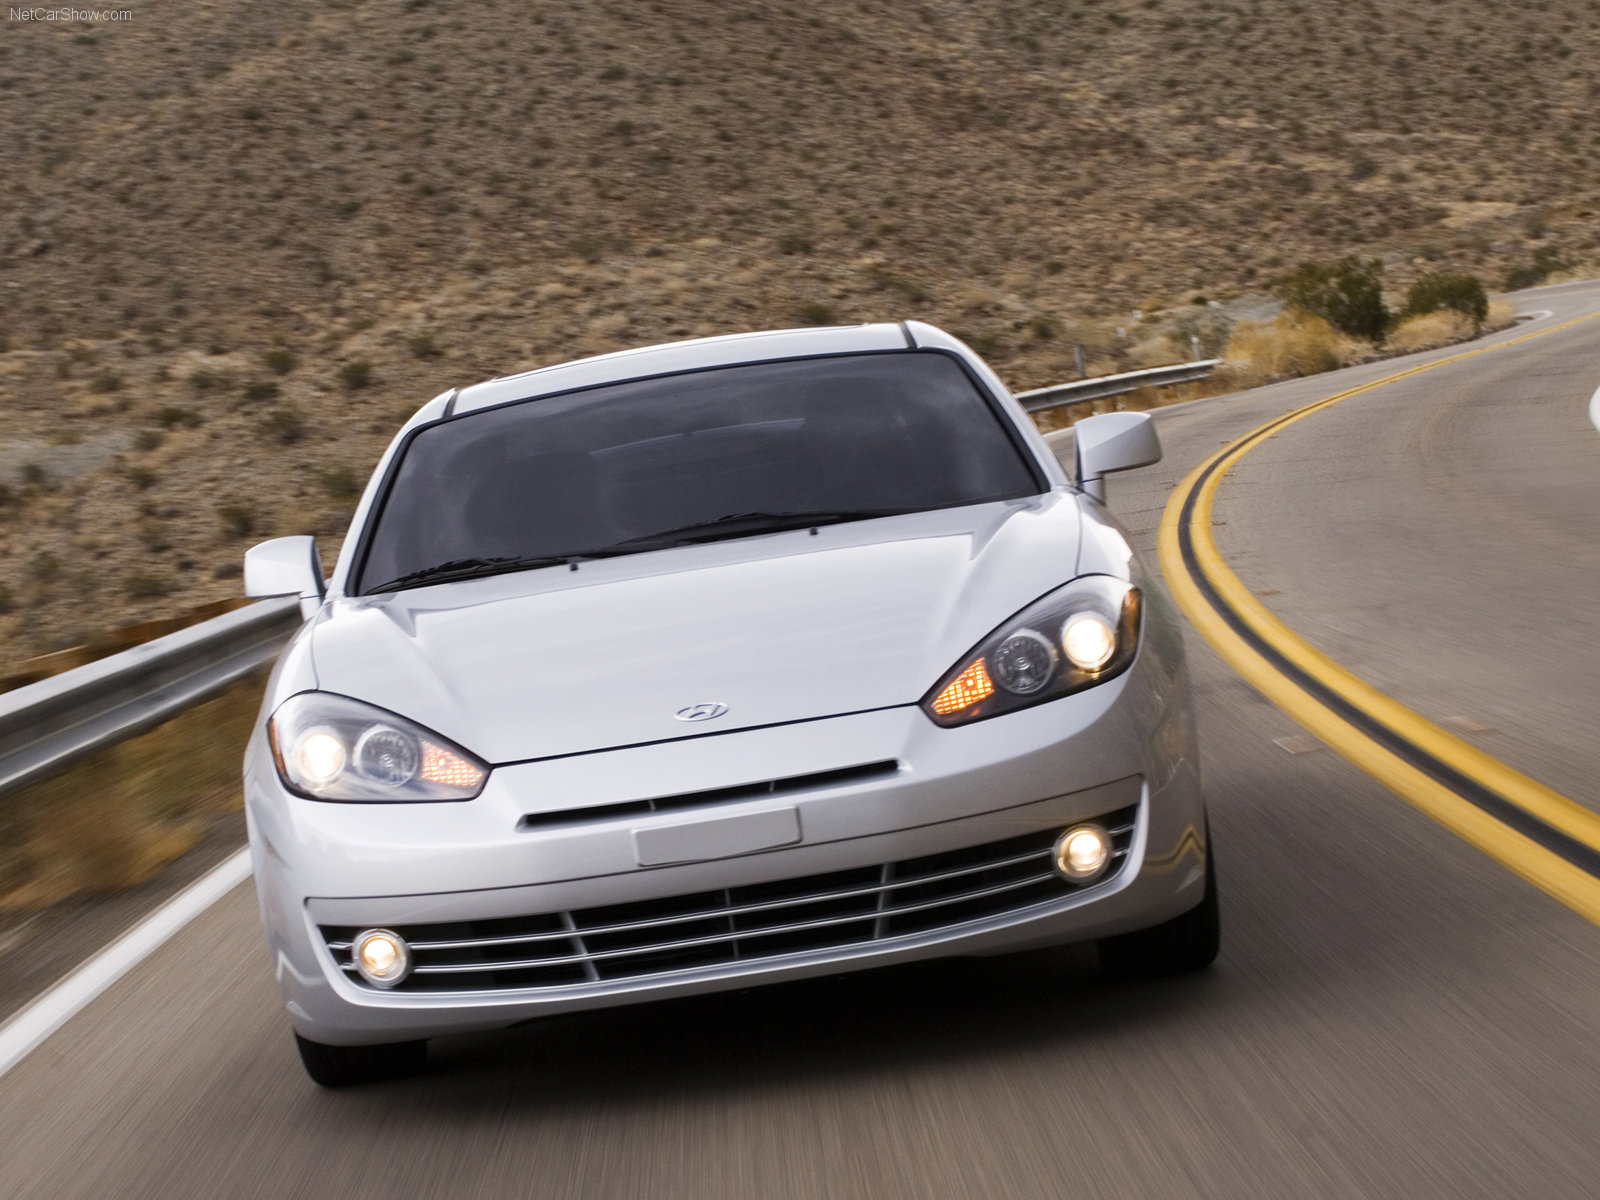 Hyundai Tiburon photo 38735